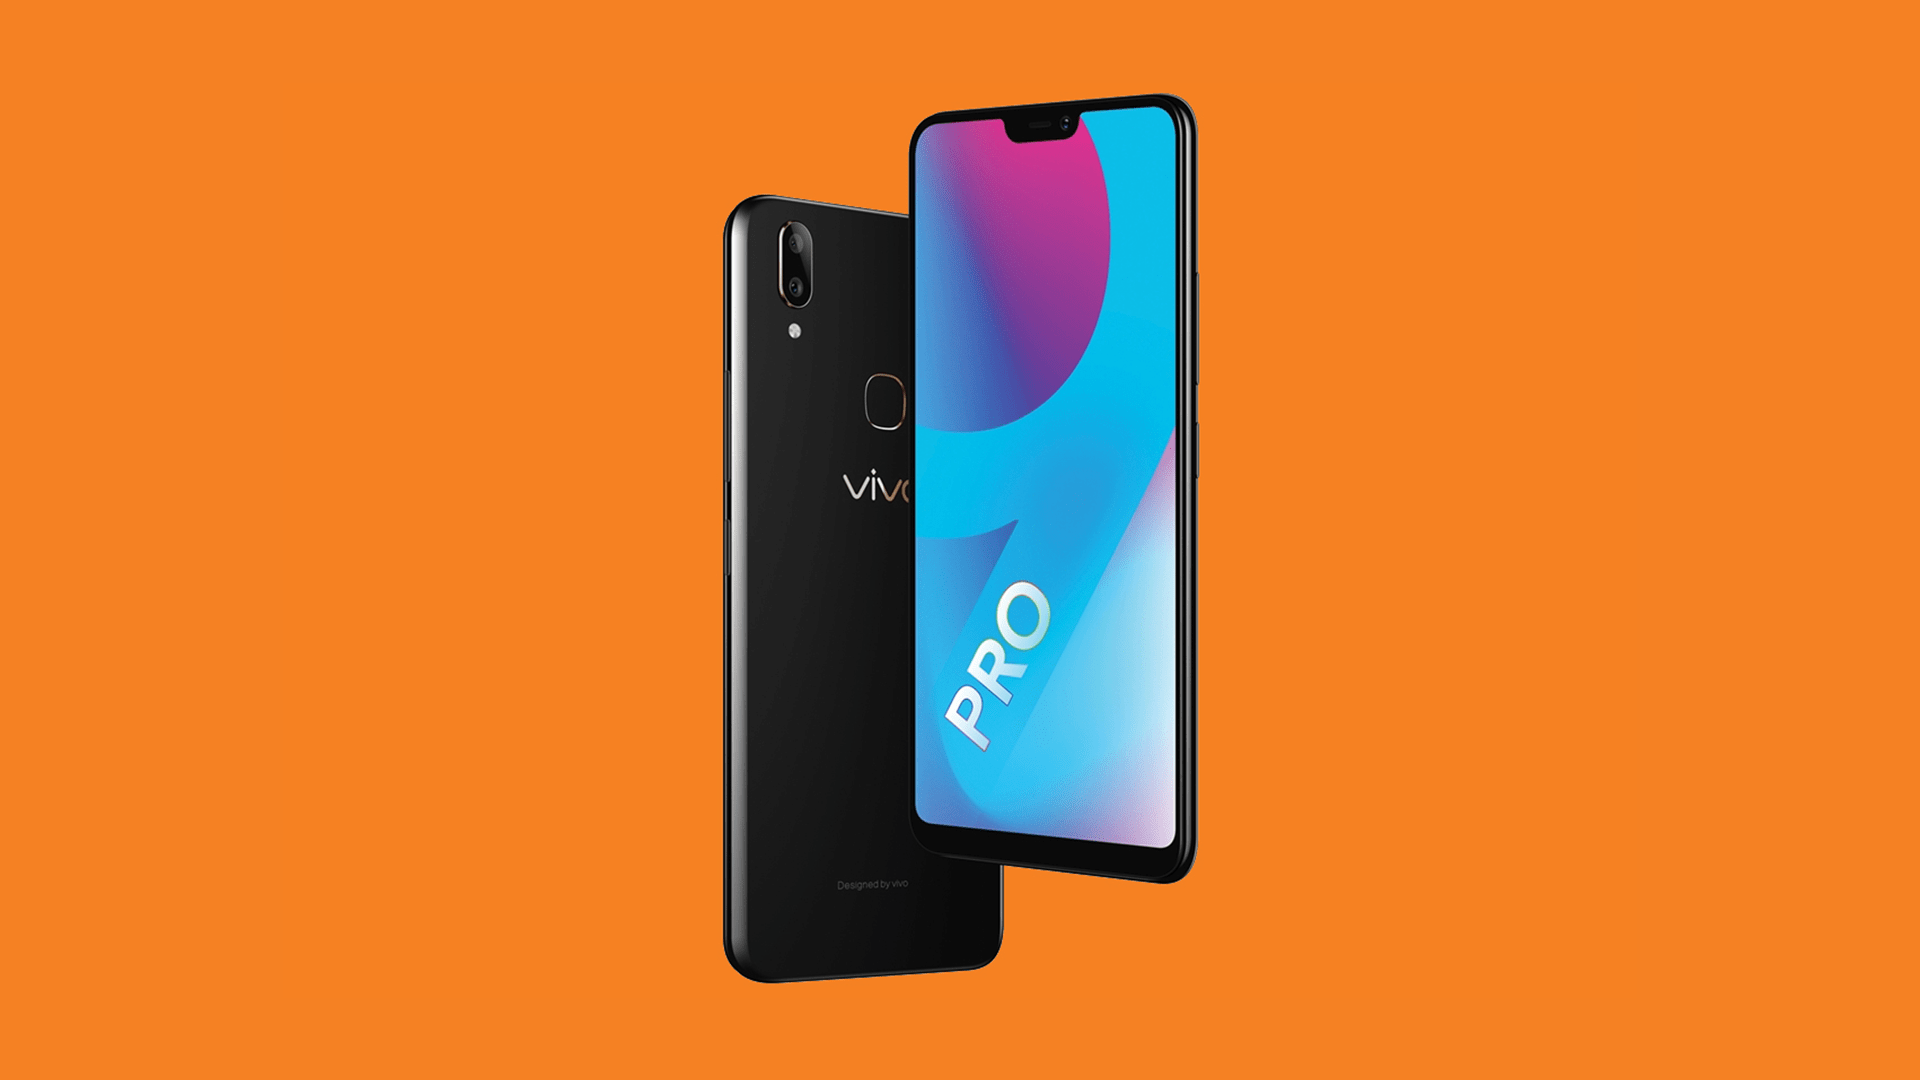 Vivo V9 Pro with Snapdragon 660 launched in India under Rs 20K 1